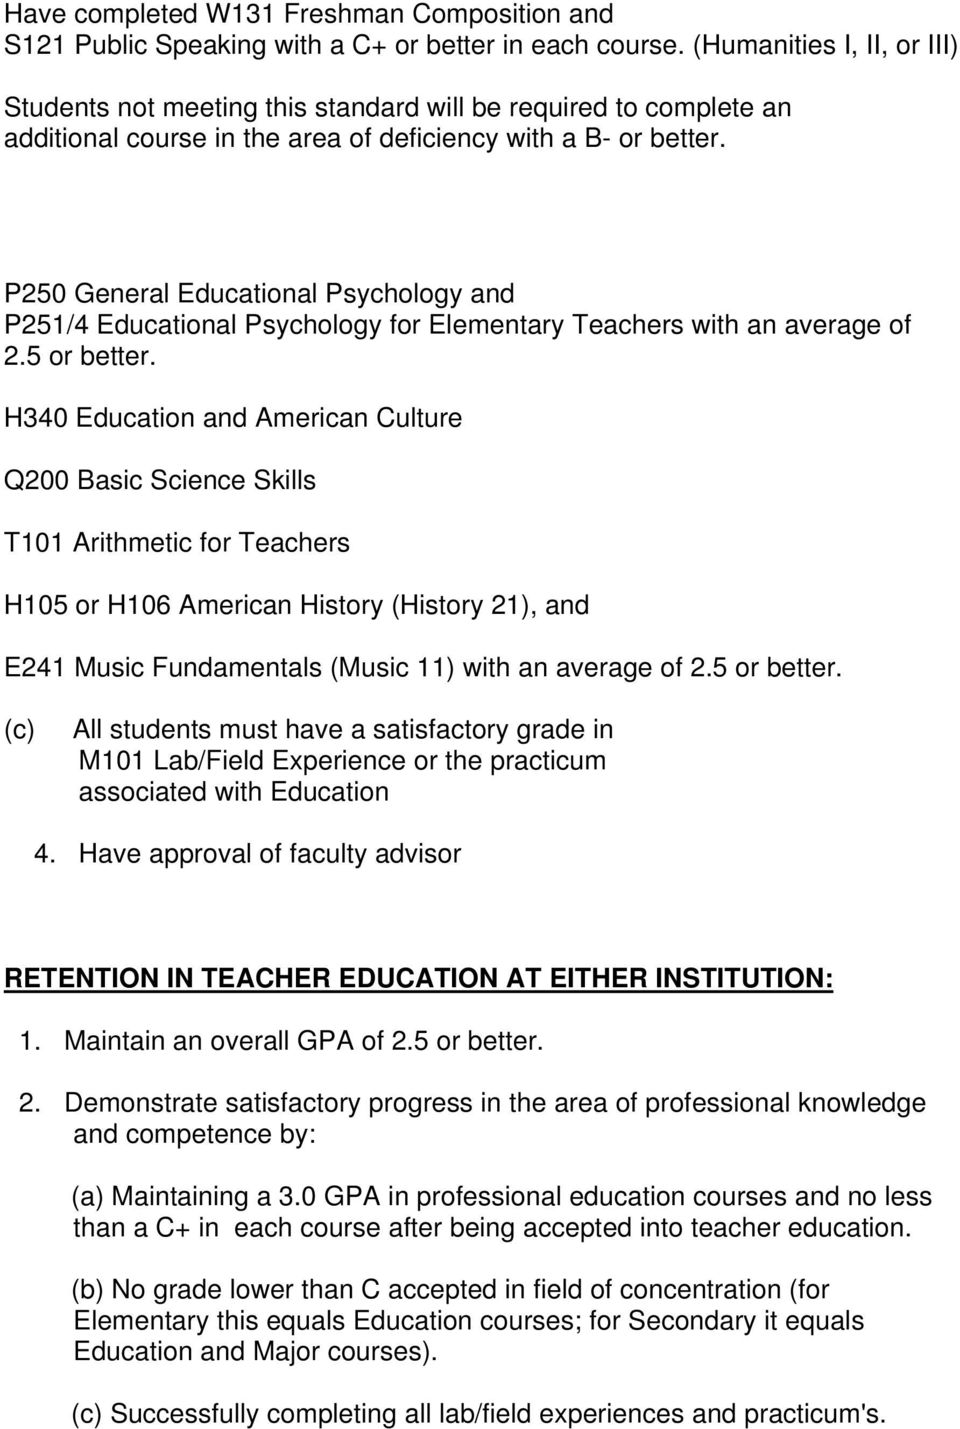 P250 General Educational Psychology and P251/4 Educational Psychology for Elementary Teachers with an average of 2.5 or better.